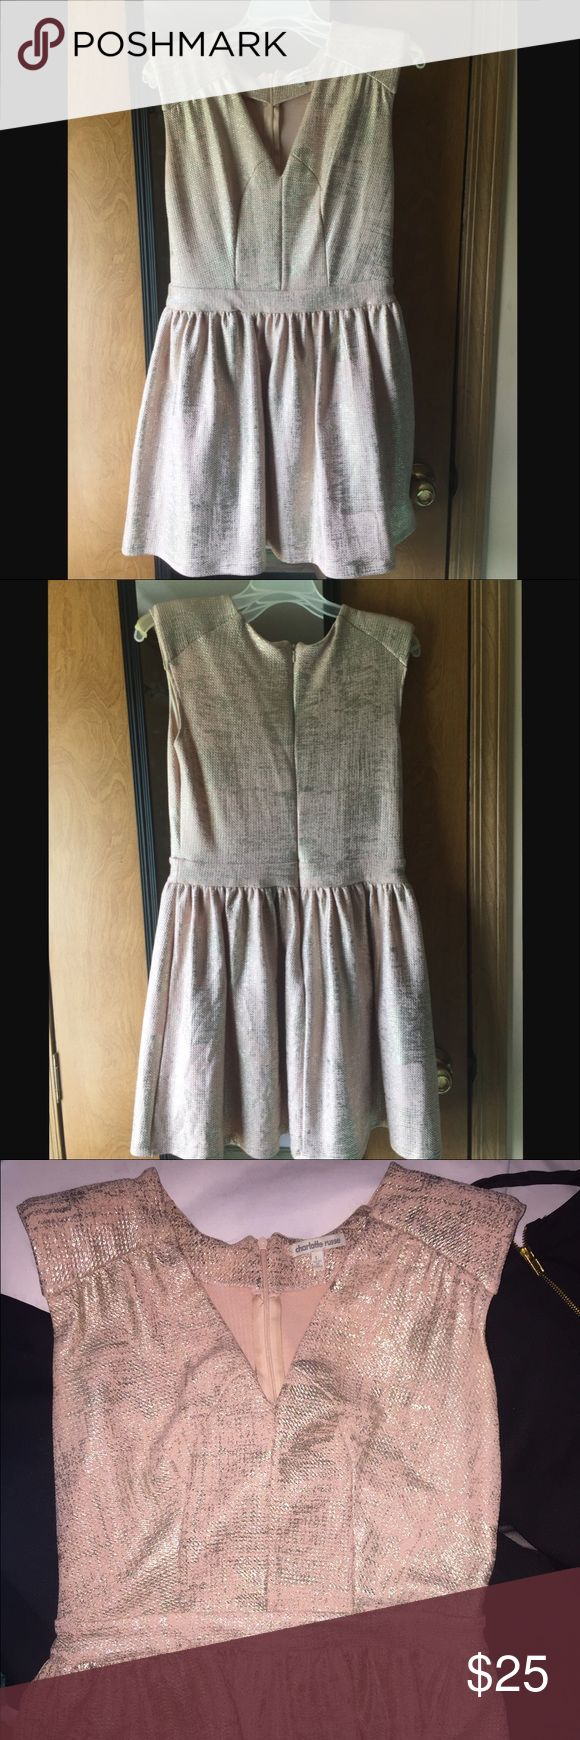 Charlotte Russe dress Only been worn once for a couple of hours.. goldish/pinkish dress Charlotte Russe Dresses Midi